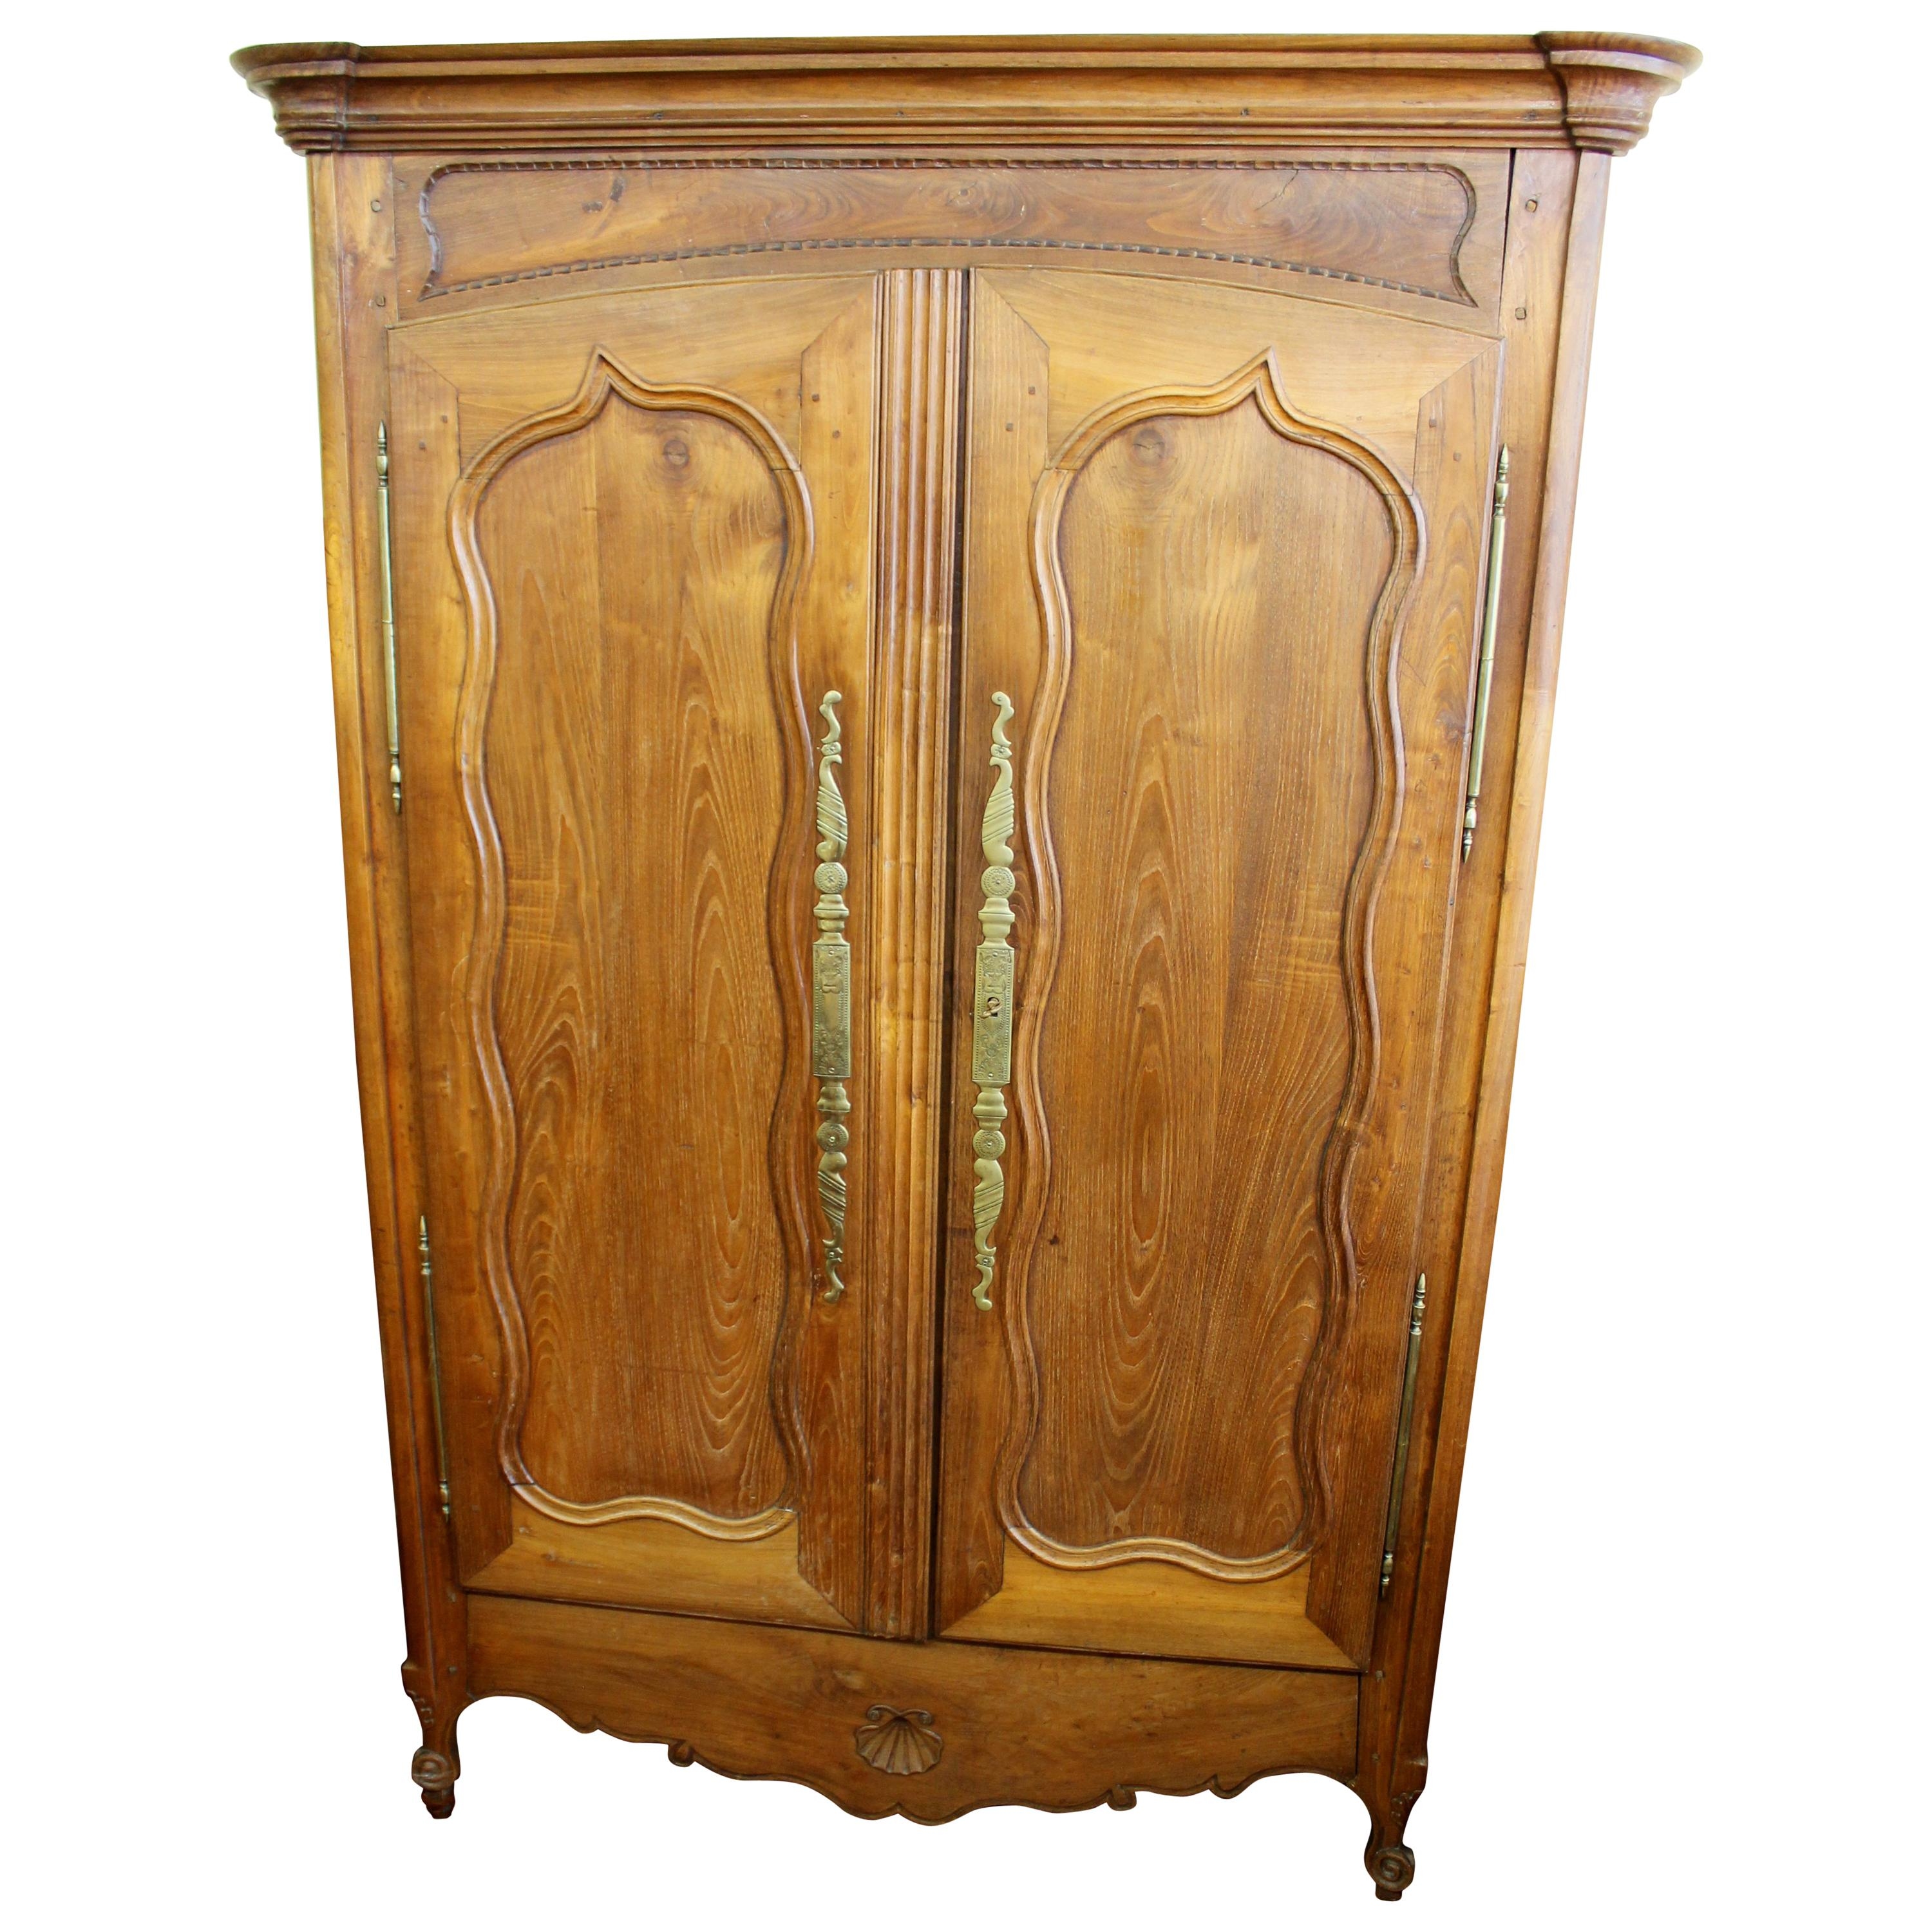 Antique French Hand-Carved Louis XV Style Fruitwood Armoire